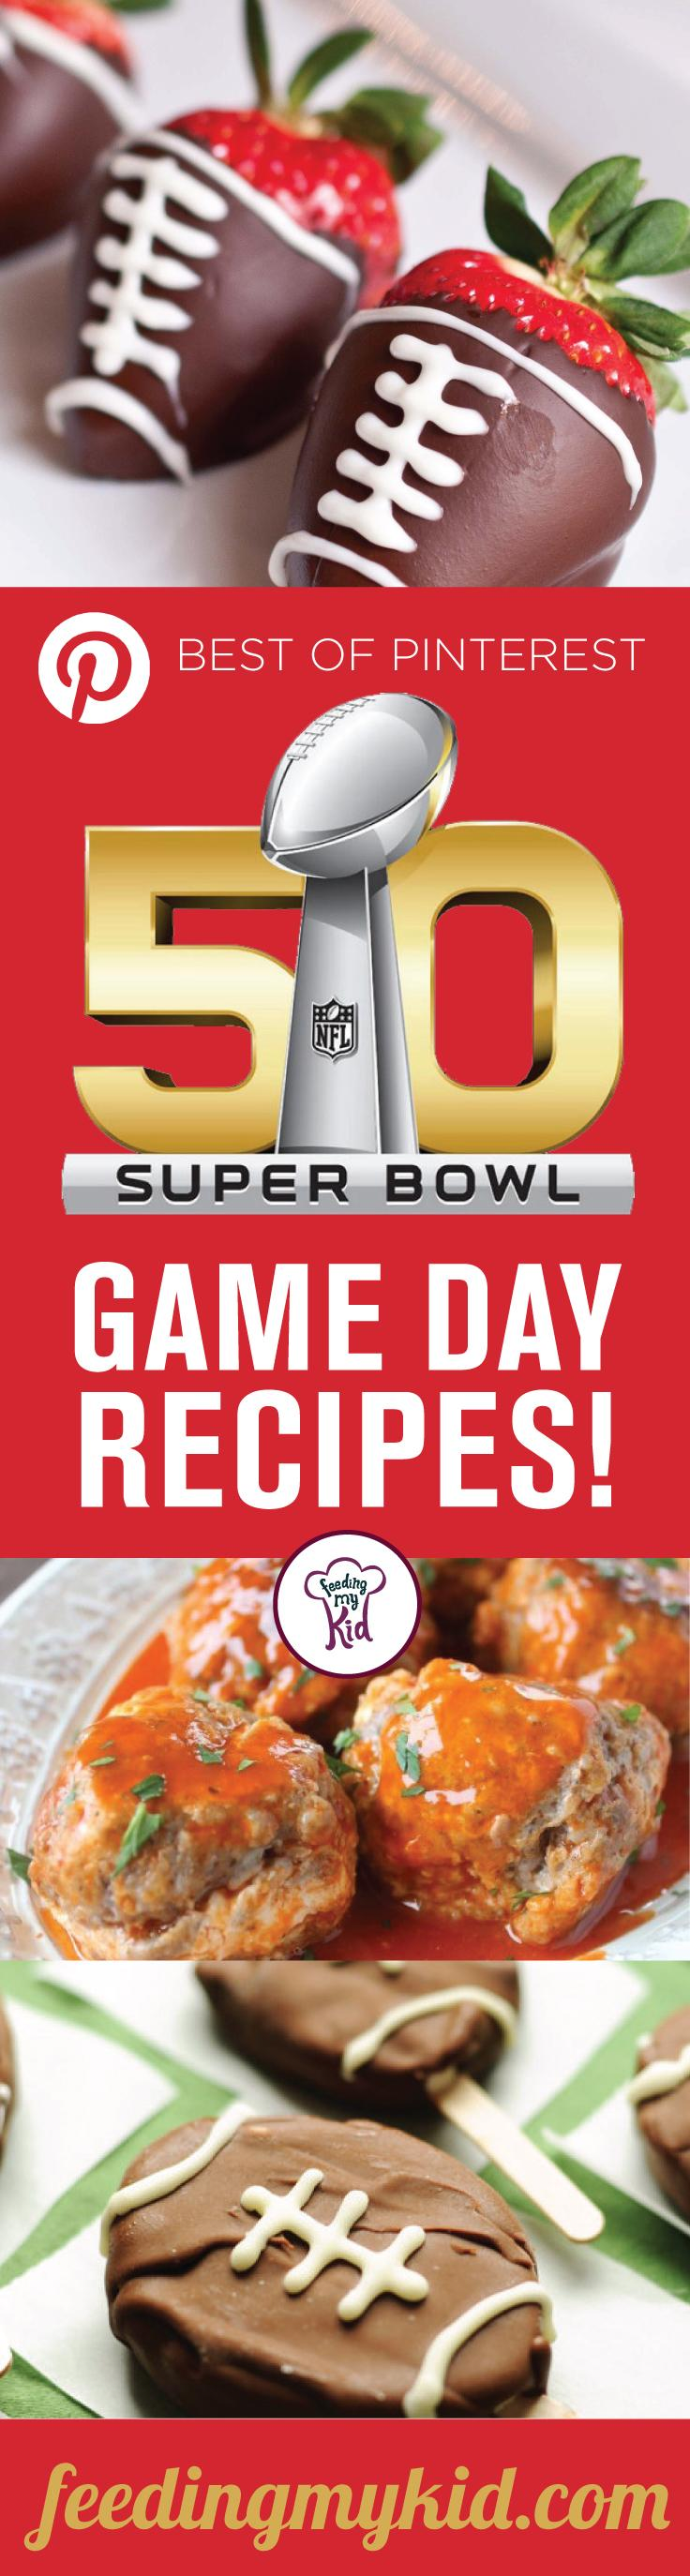 We've handpicked from Pinterest the easiest super bowl food recipes to make for your game day. These are easy and delicious!